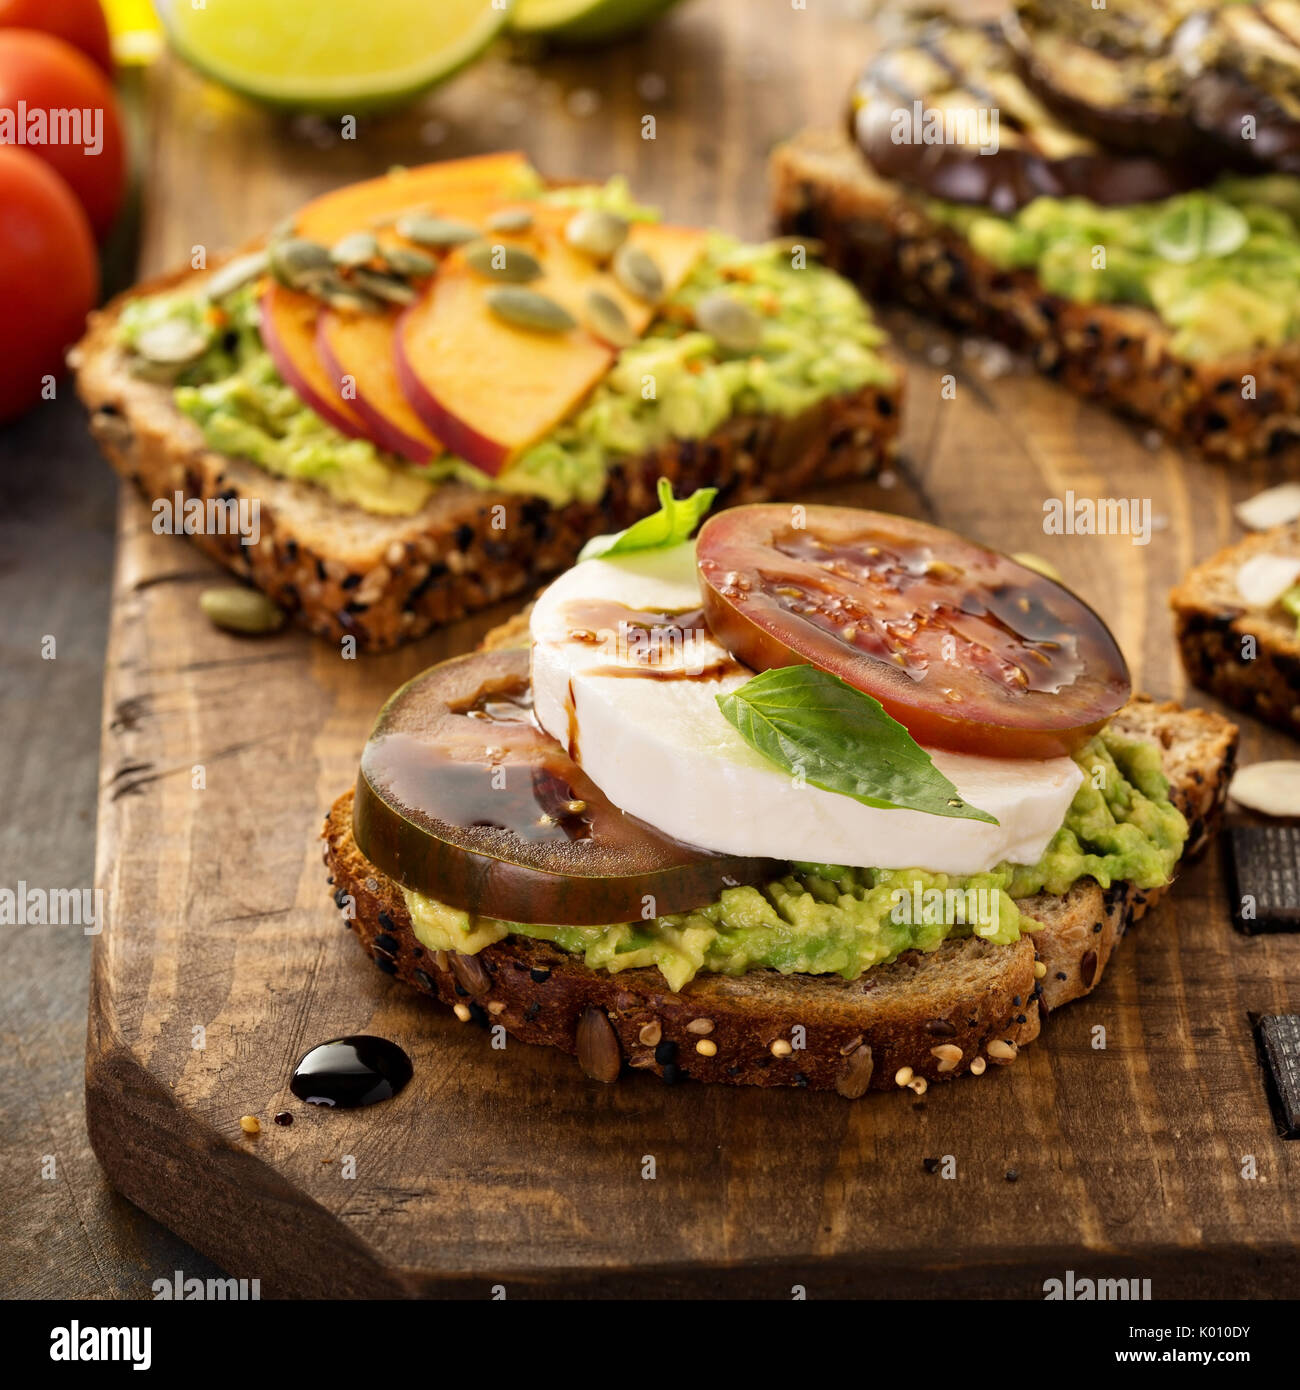 Variety of avocado toasts on a cutting board - Stock Image